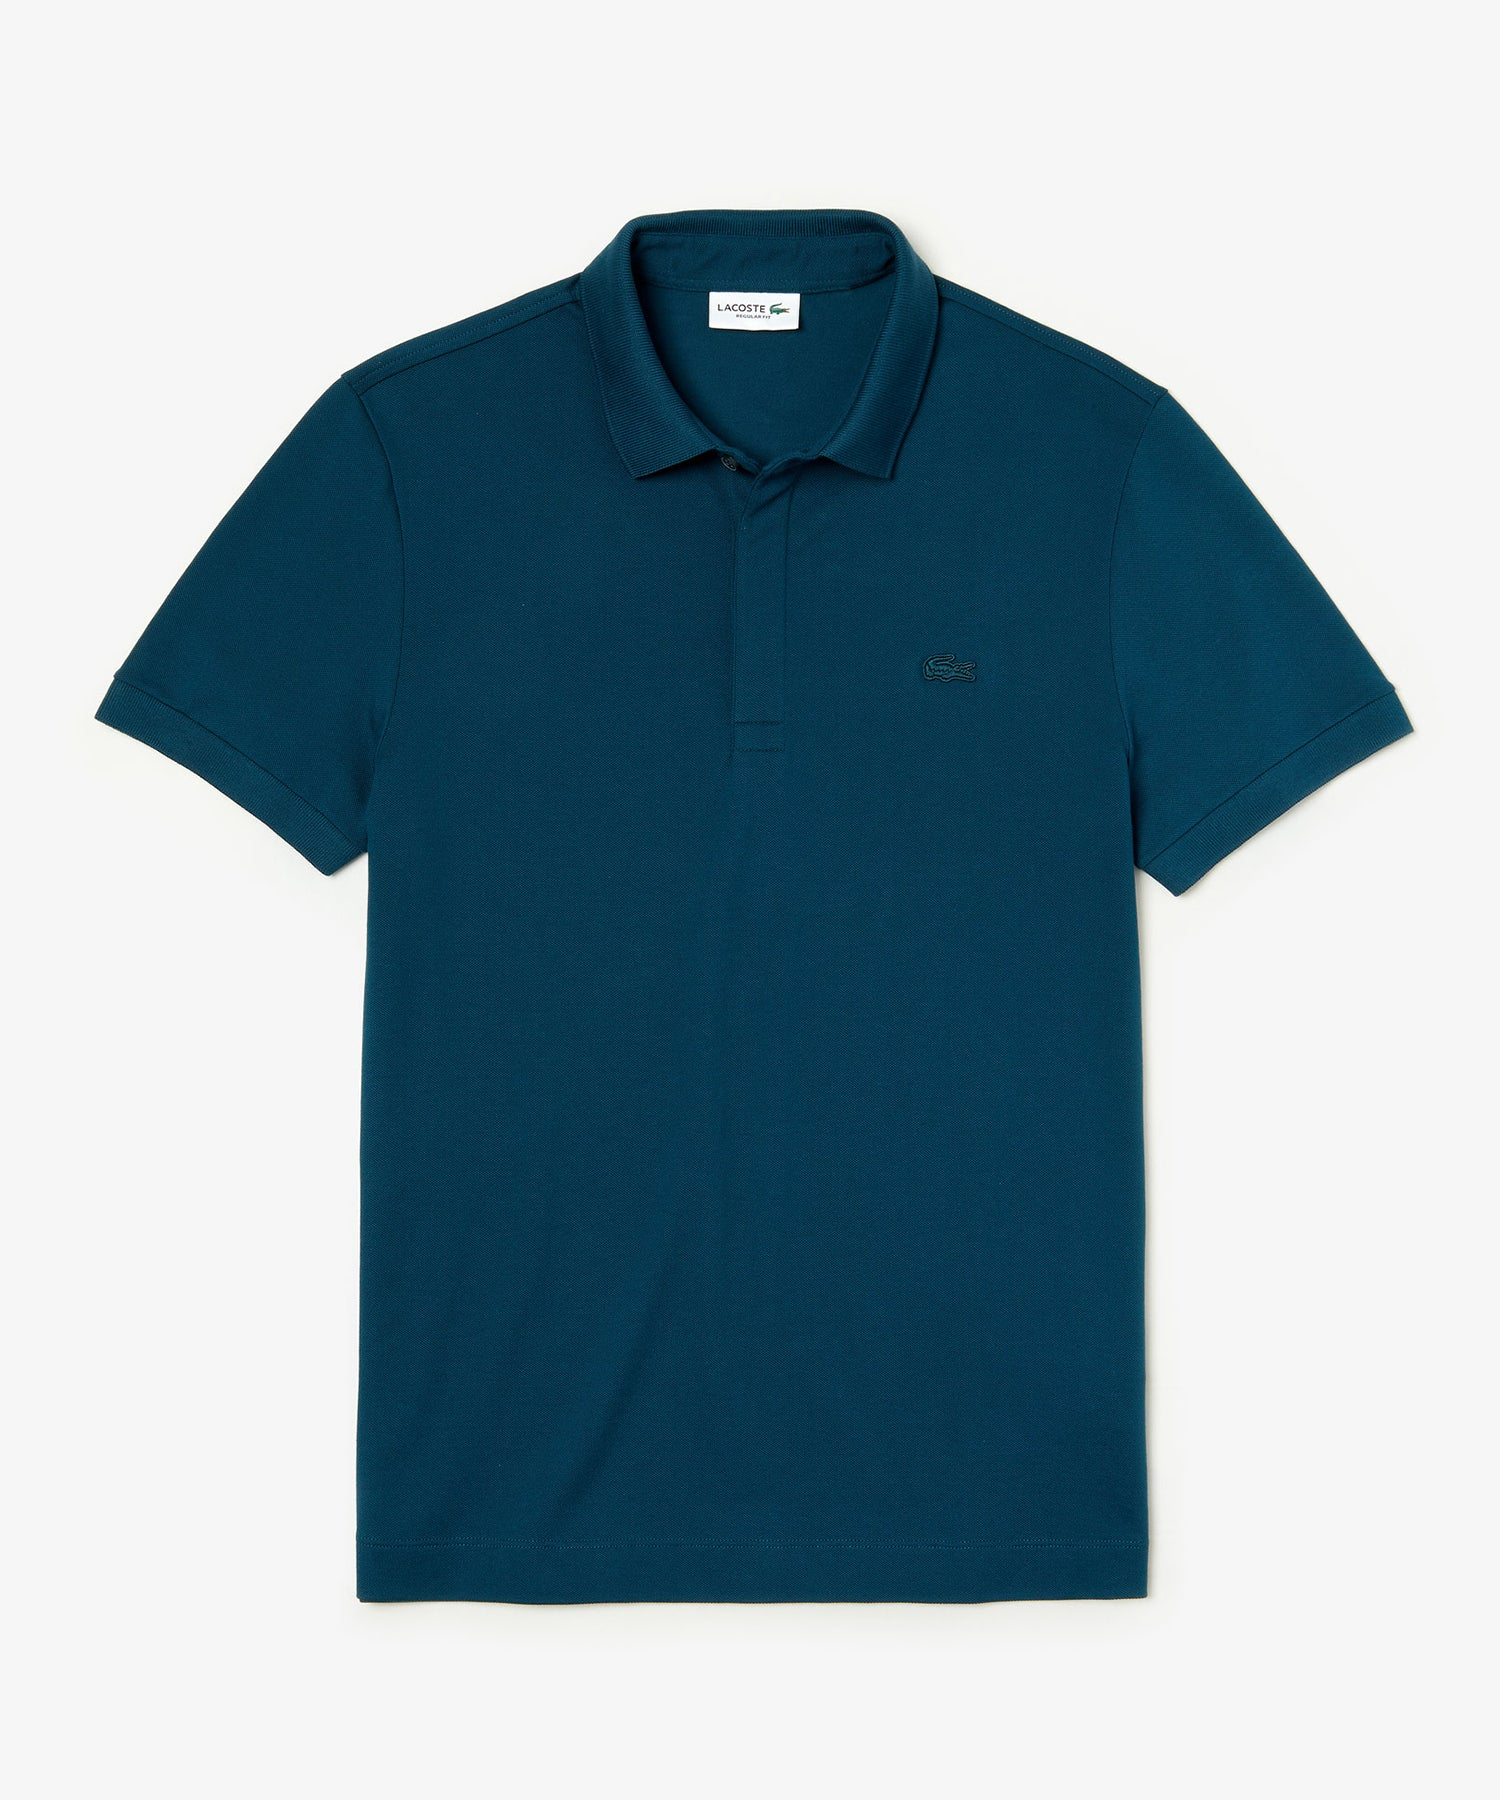 Lacoste Regular Fit Stretch Cotton Paris Polo in Blue